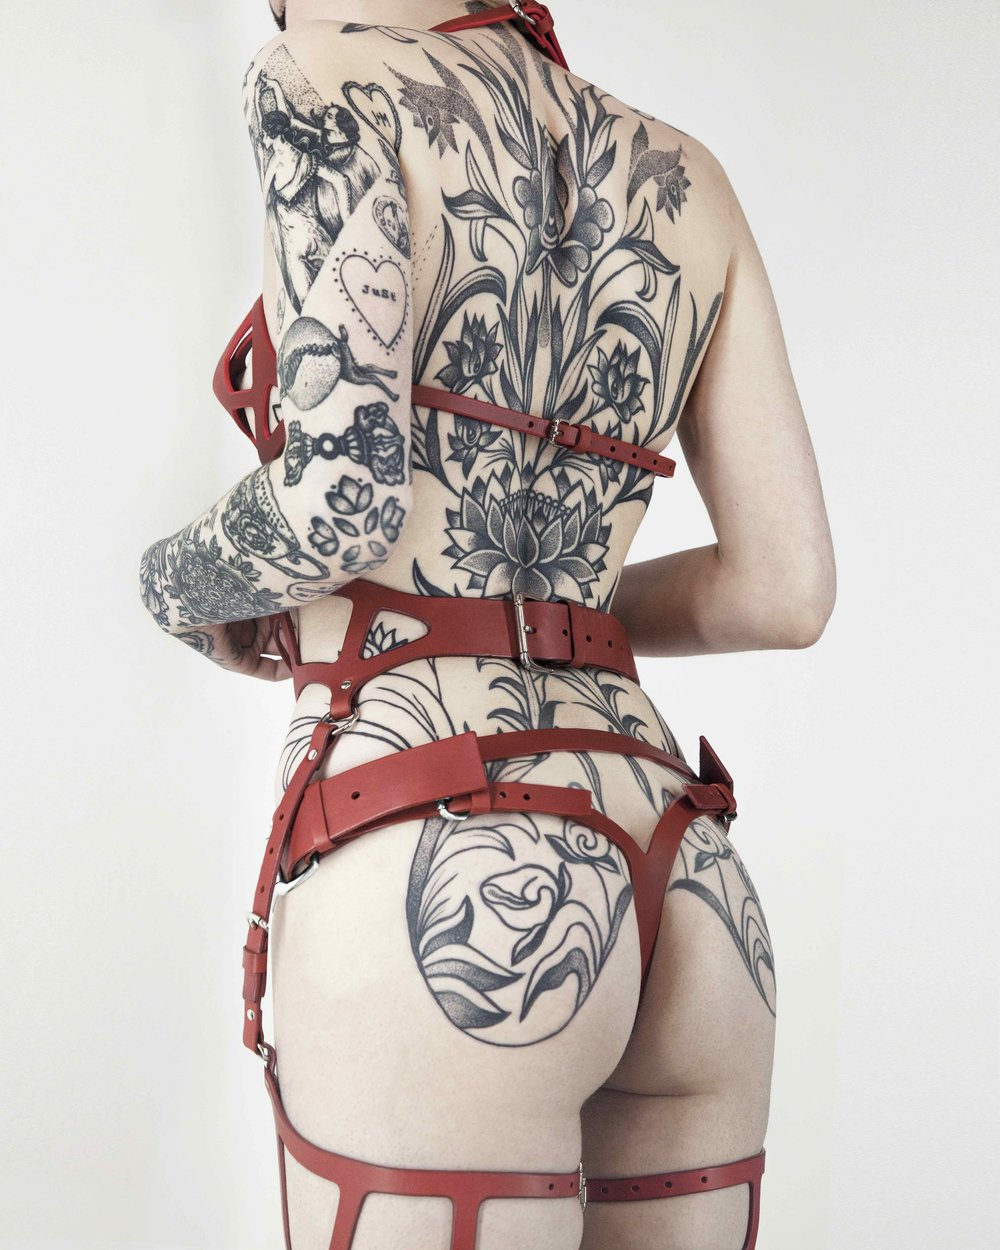 INTRODUCING / @JAYROSETATTOO WEARING THE TARGET BRA , CUT OUT KNICKERS AND CURVED CUT OUT SUSPENDER